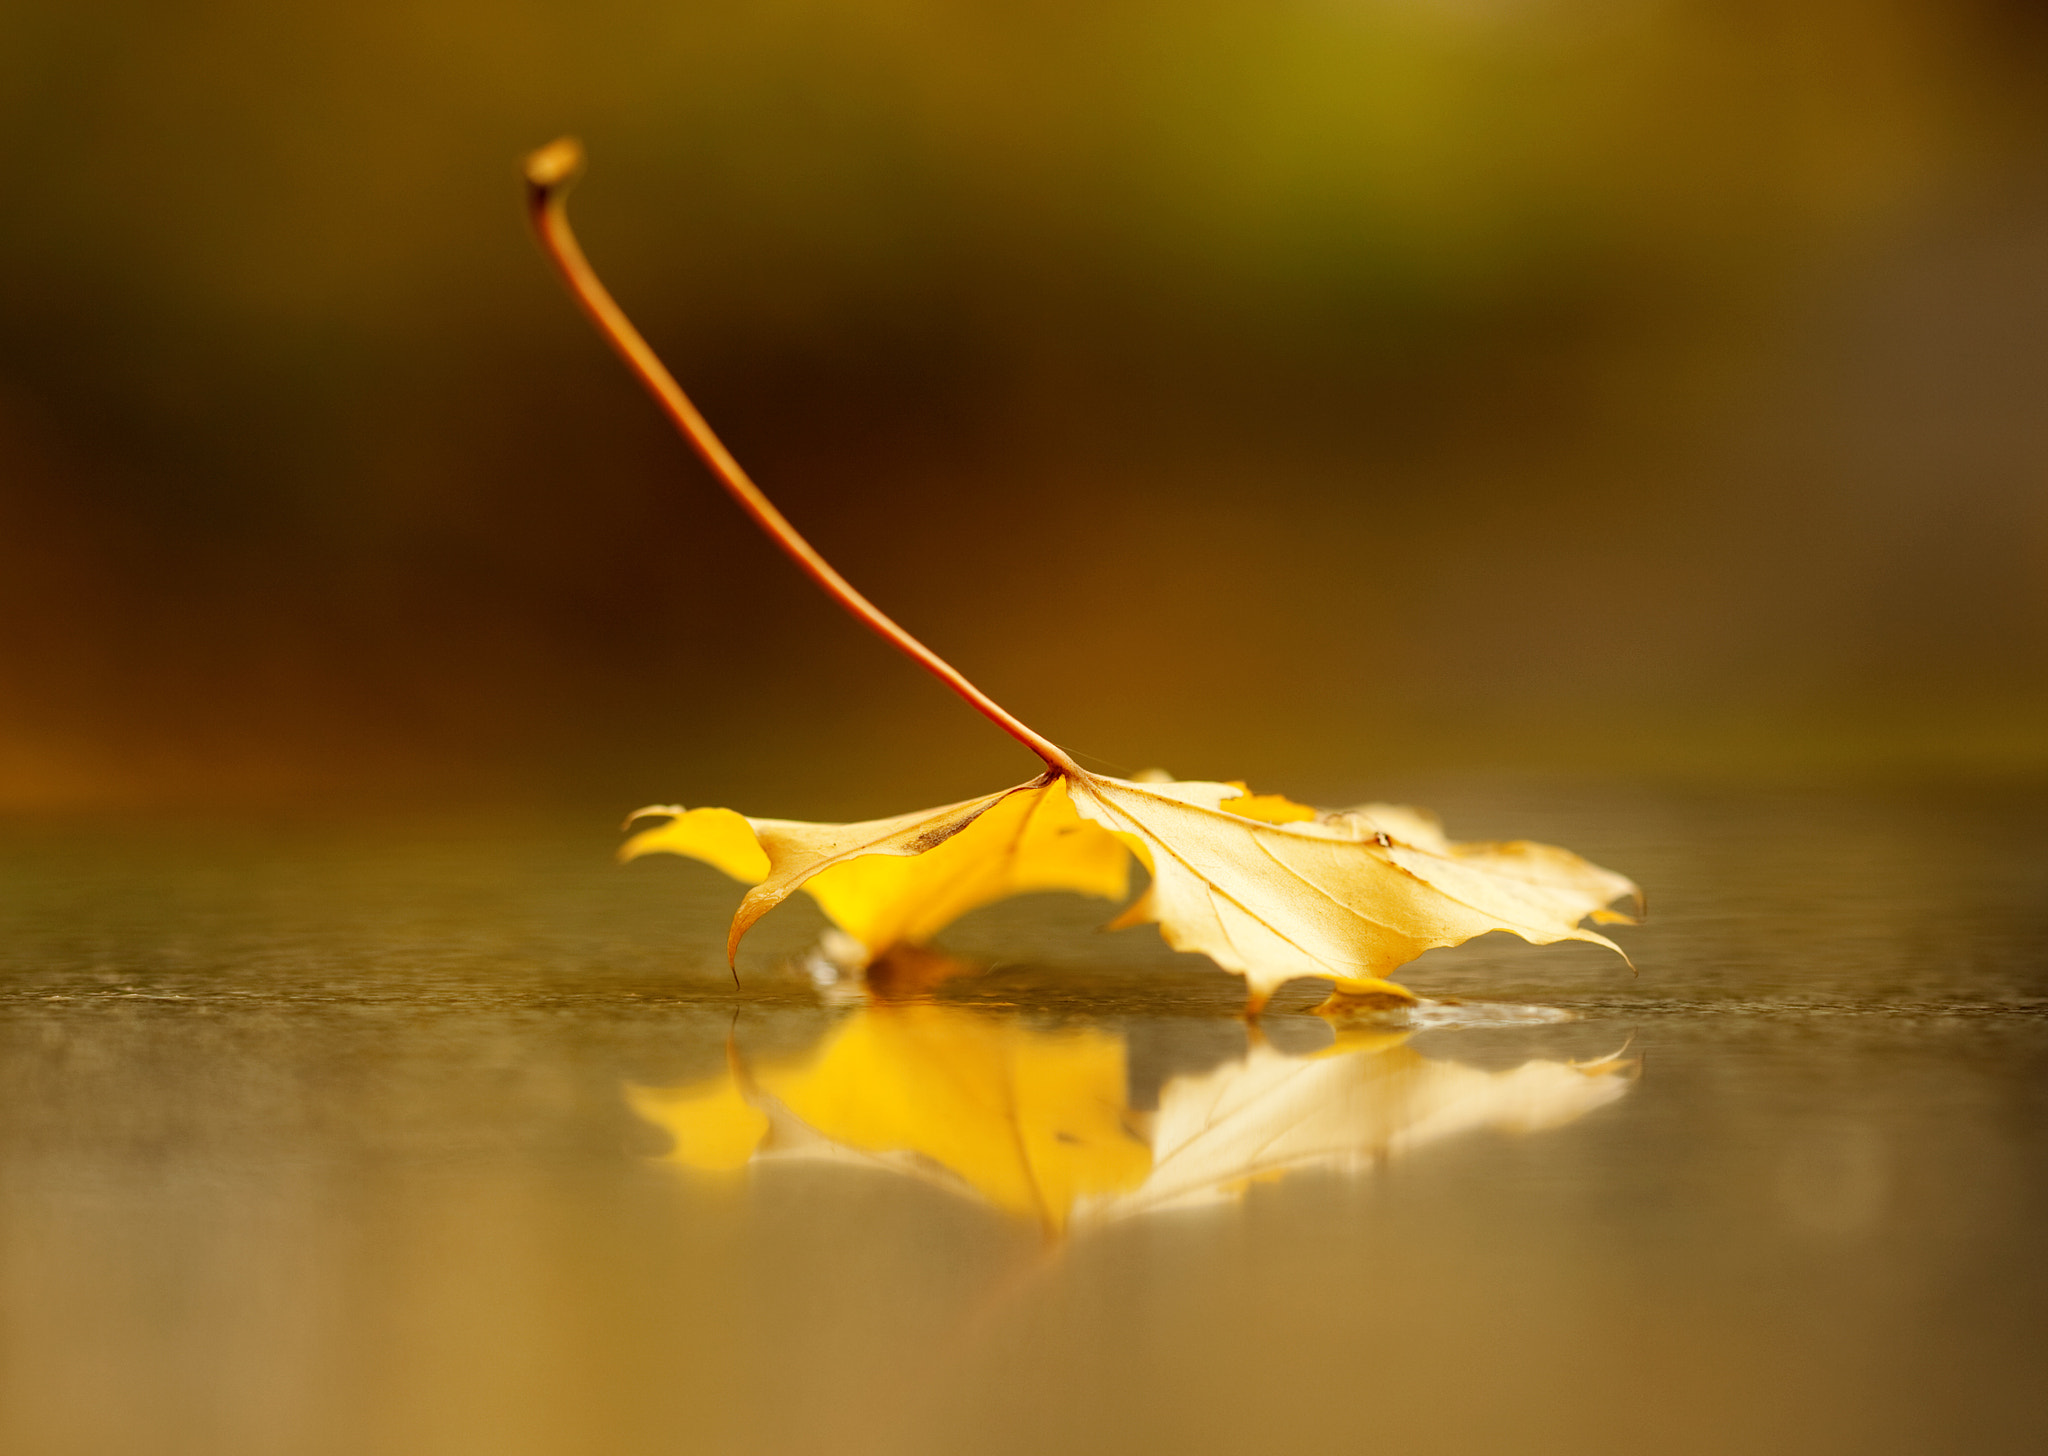 Photograph Fallen Down by Magdalena Jessica Krynicka on 500px